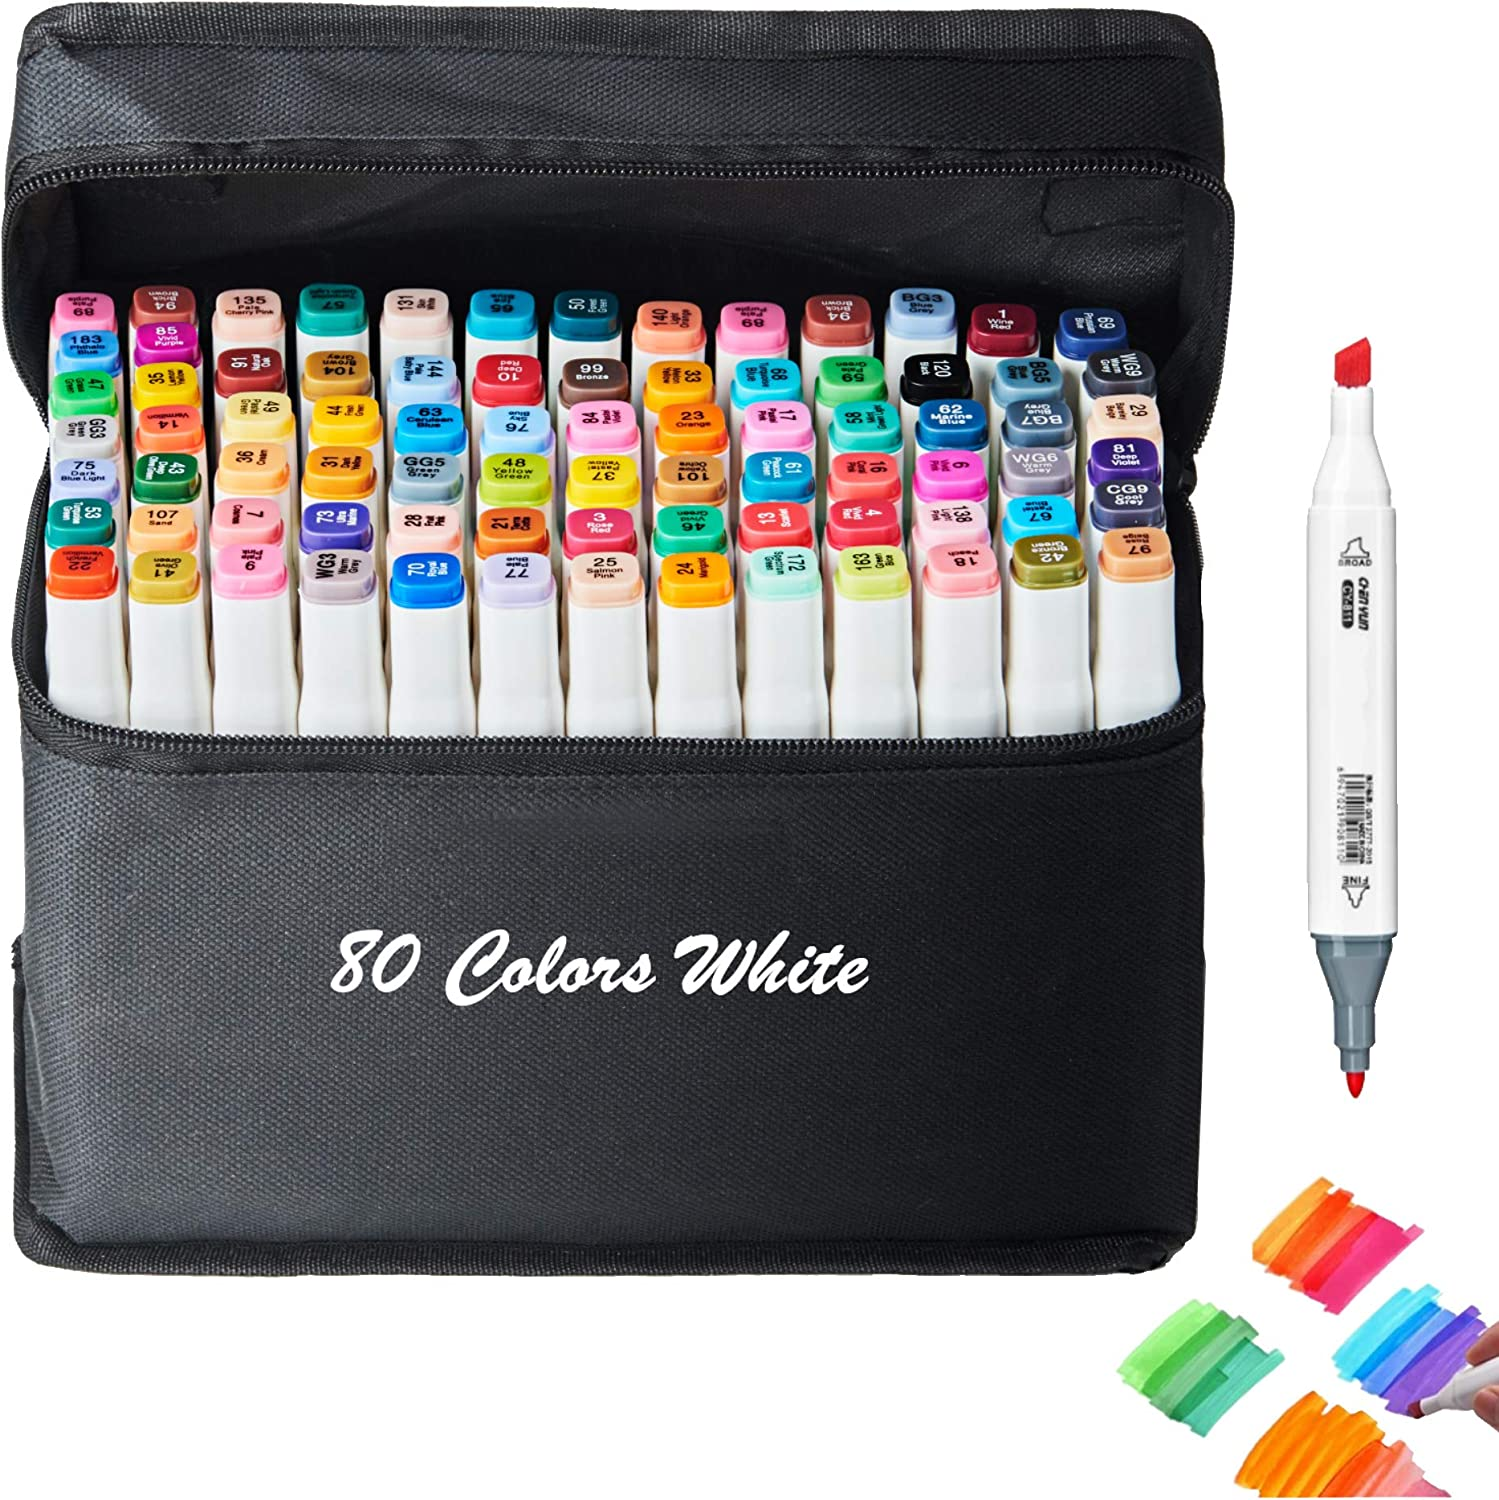 Animation Art Sketch Sketching Classic Series Alcohol Felt Permanent Markers Alcohol-based Markers 80 Color Alcohol Markers,Dual Tip Art Marker Pen